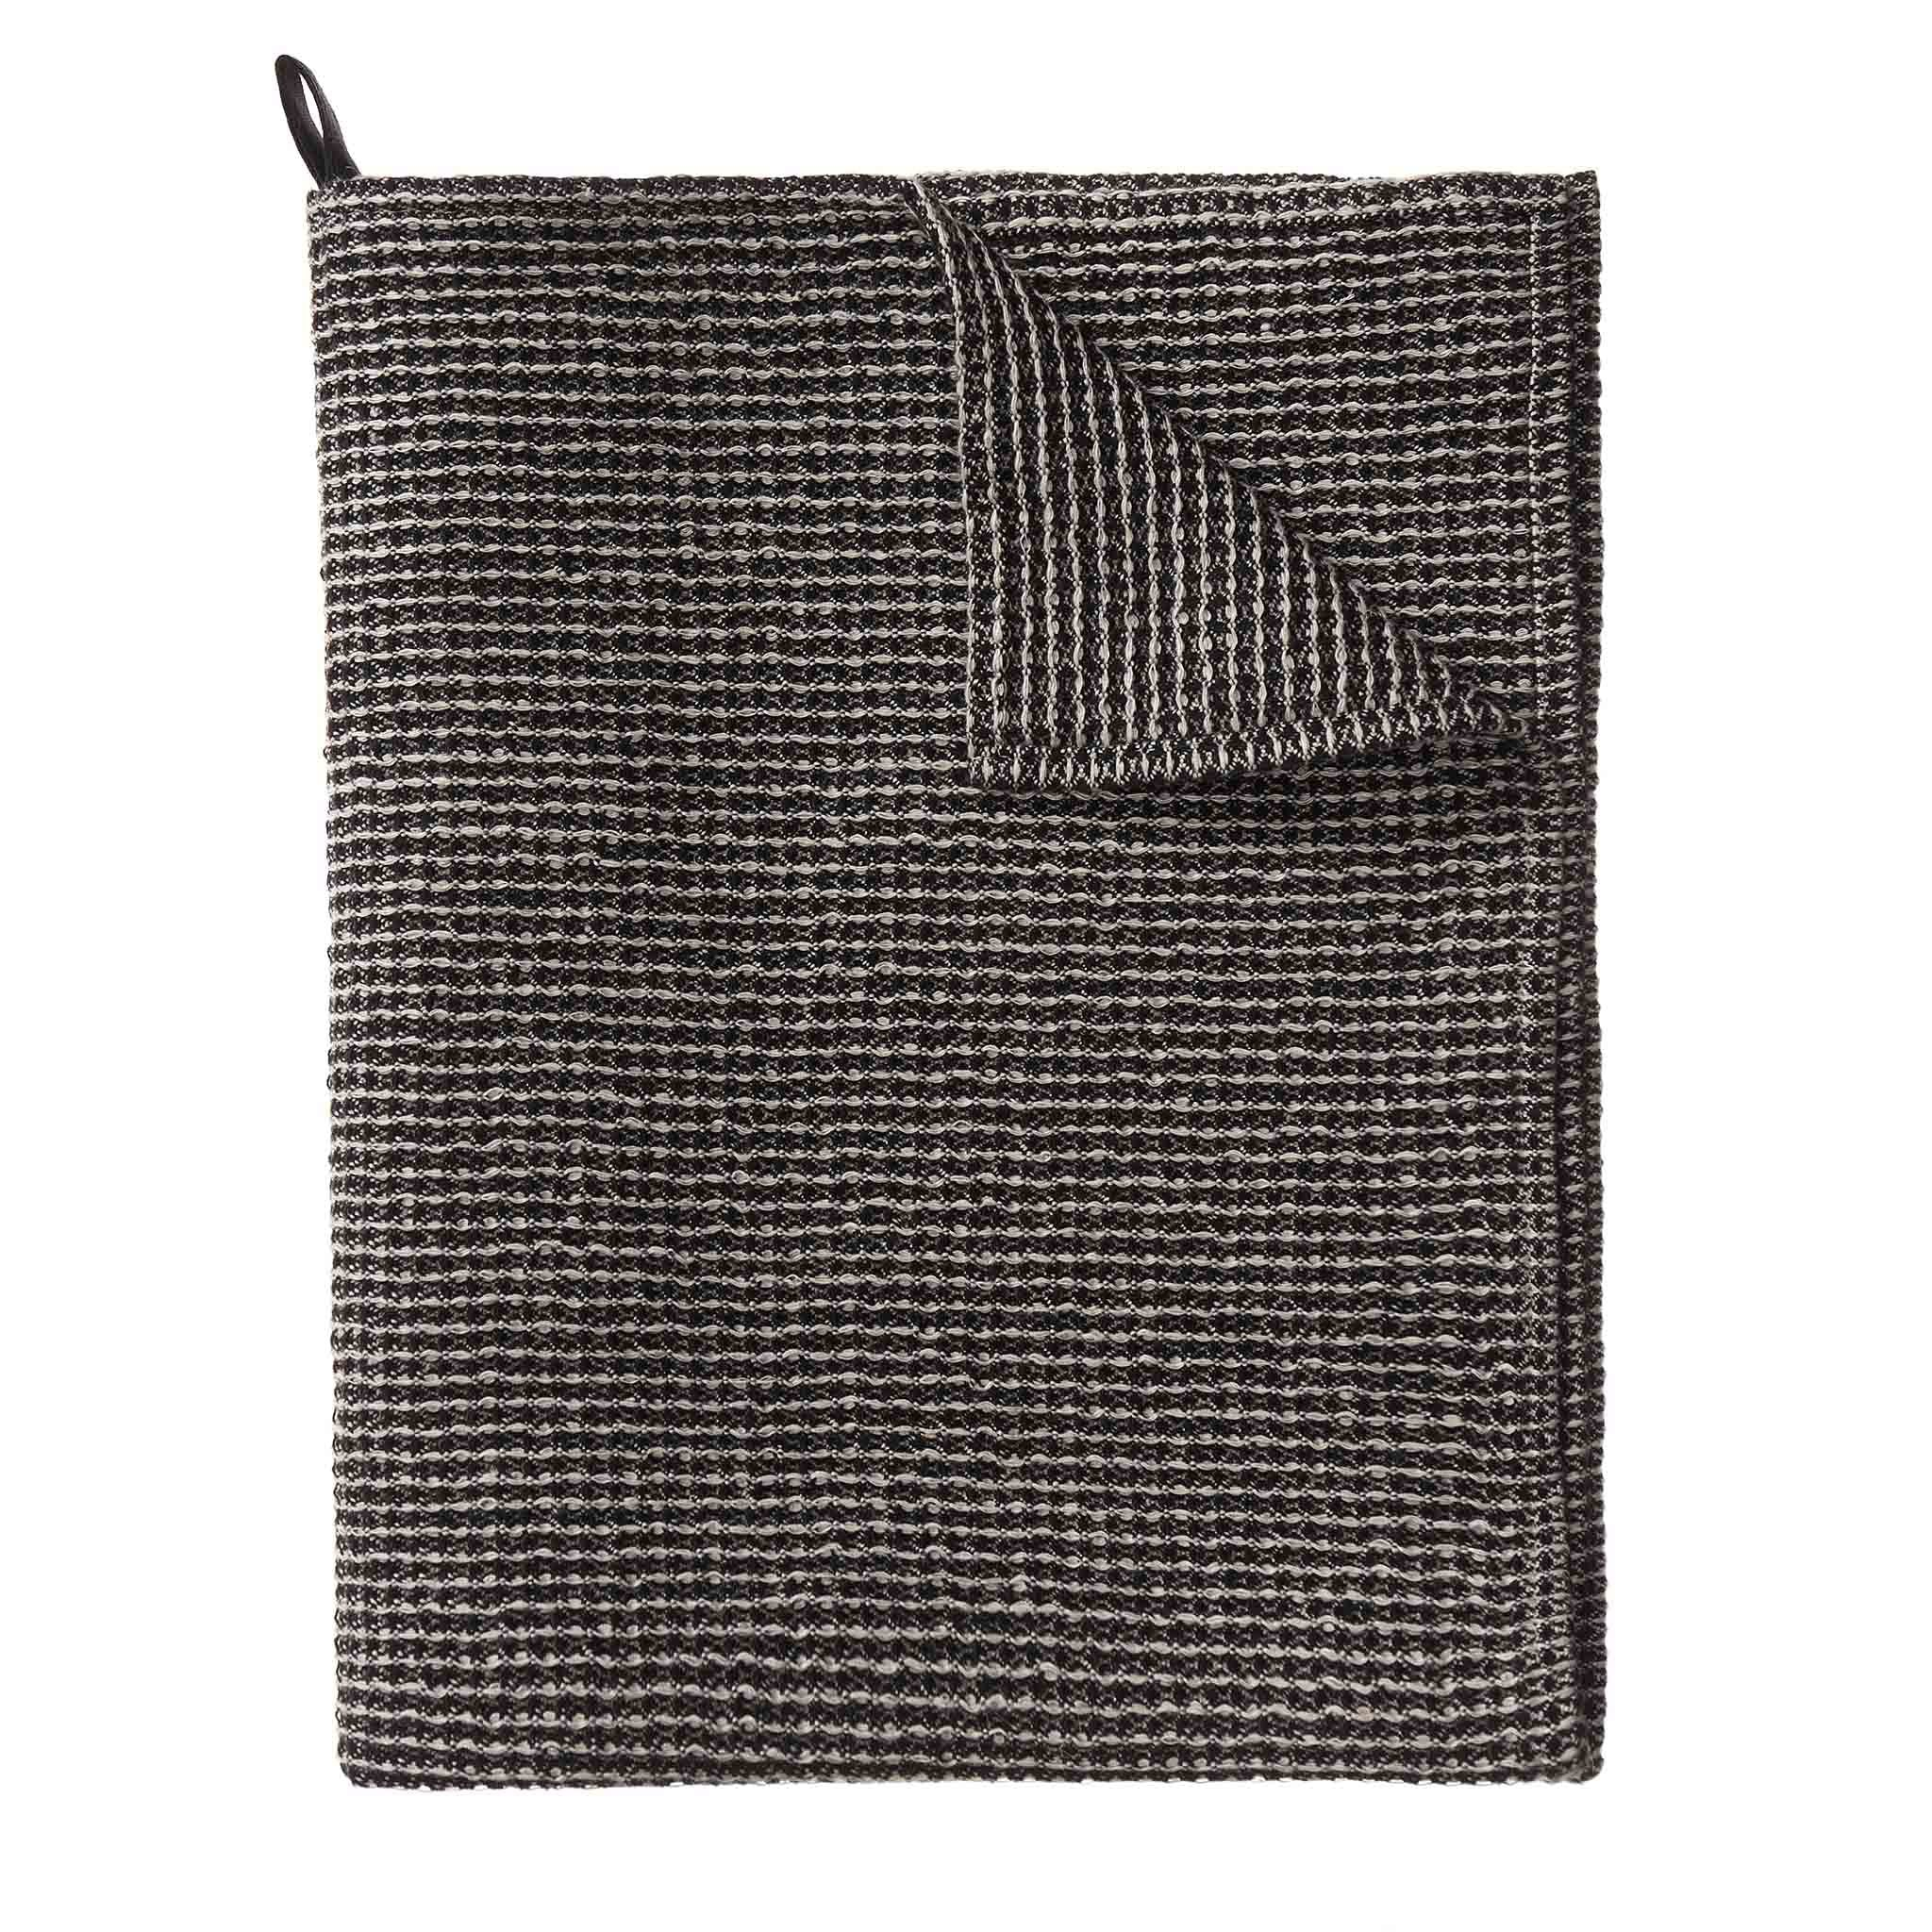 Motrai Tea Towel black & beige, 50% linen & 50% cotton